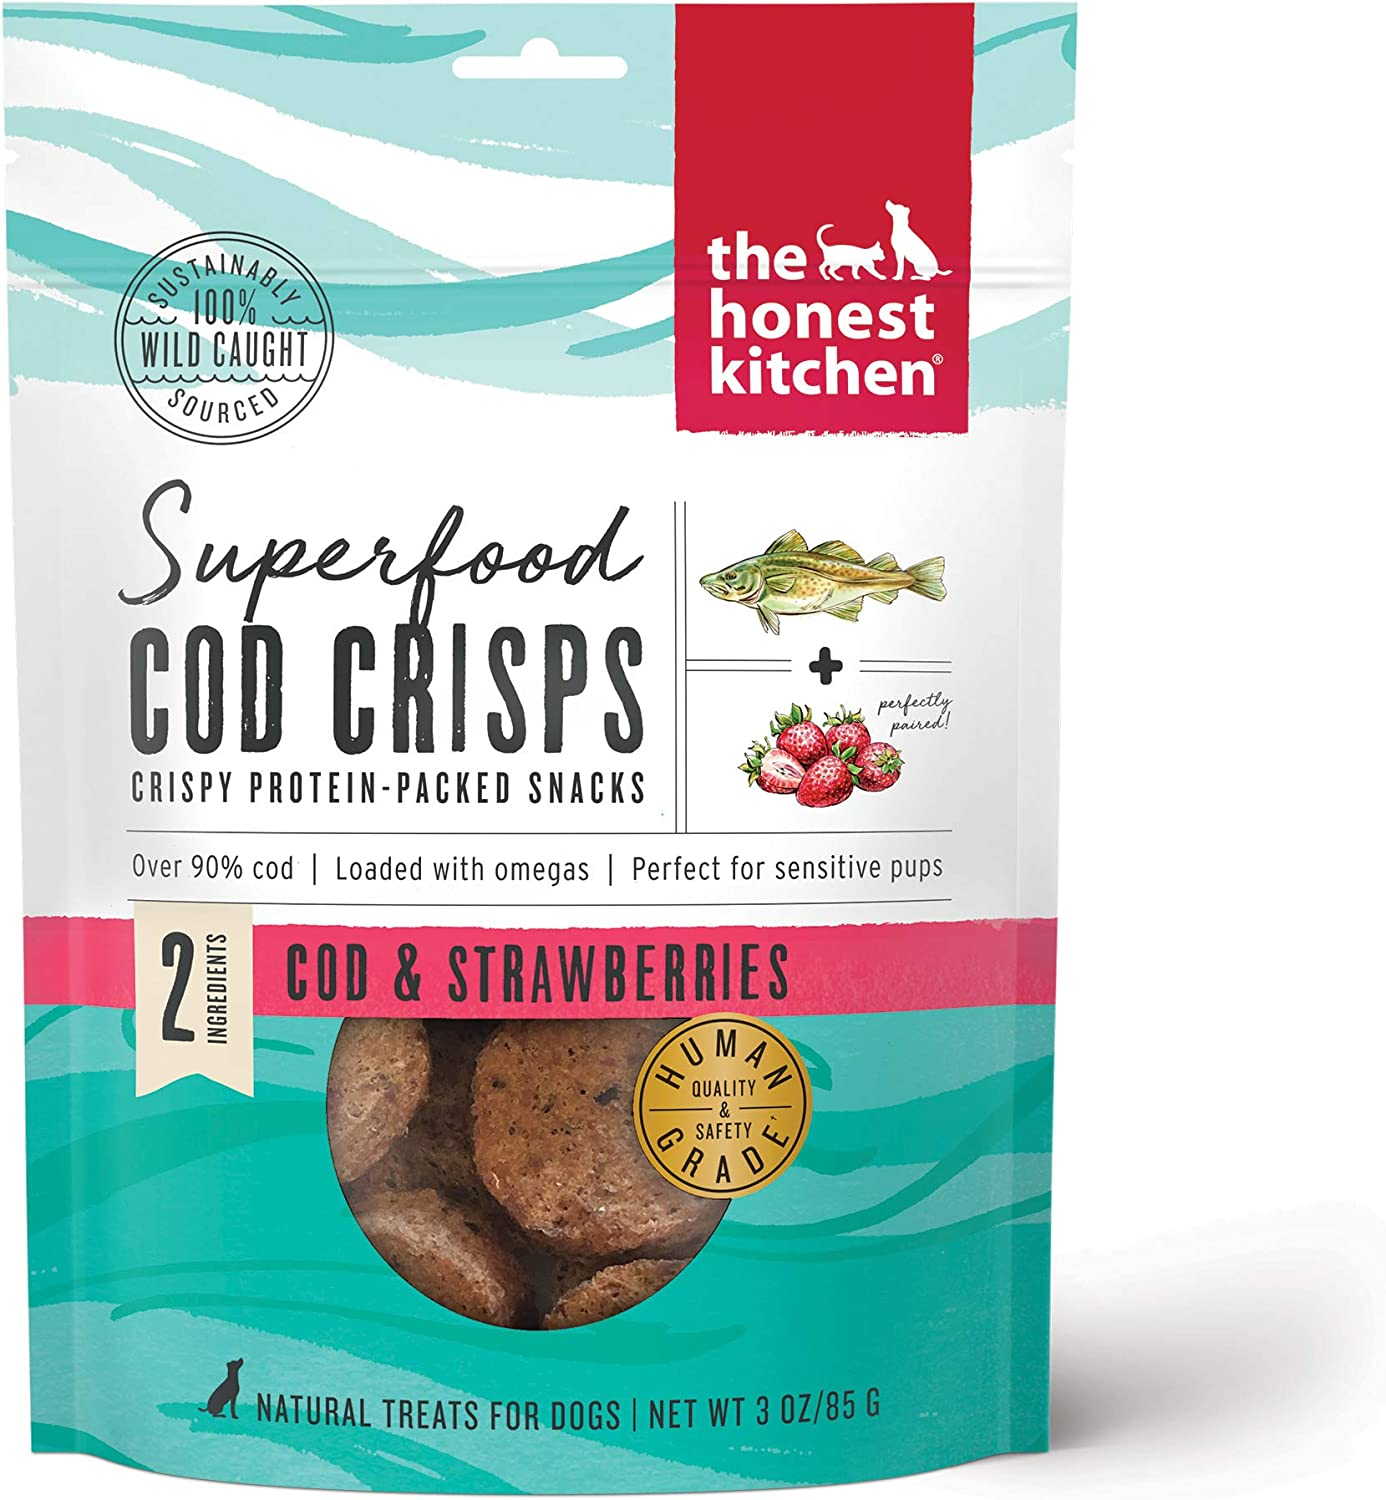 The Honest Kitchen Superfood Cod Crisps for Dogs